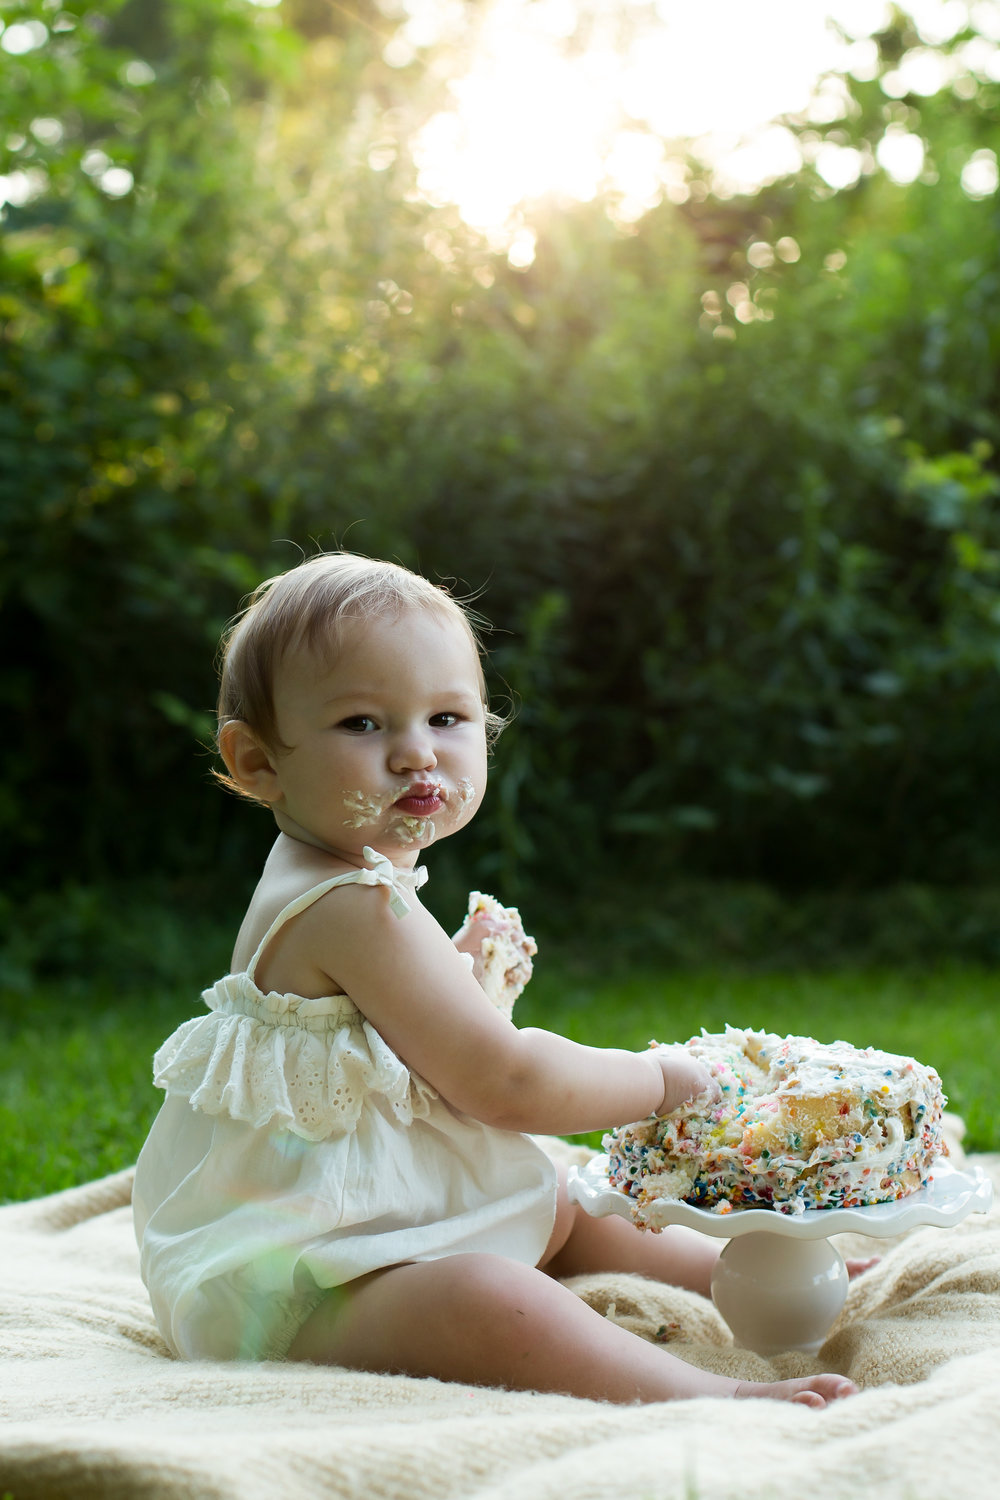 Standard Portrait Sessions - (3 Months and up, Family, Cake Smashes, Children's Portraits, Couples,)Standard Session: $175.00 plus Tax1 hour session, in studio or on location$35.00 Print Credit